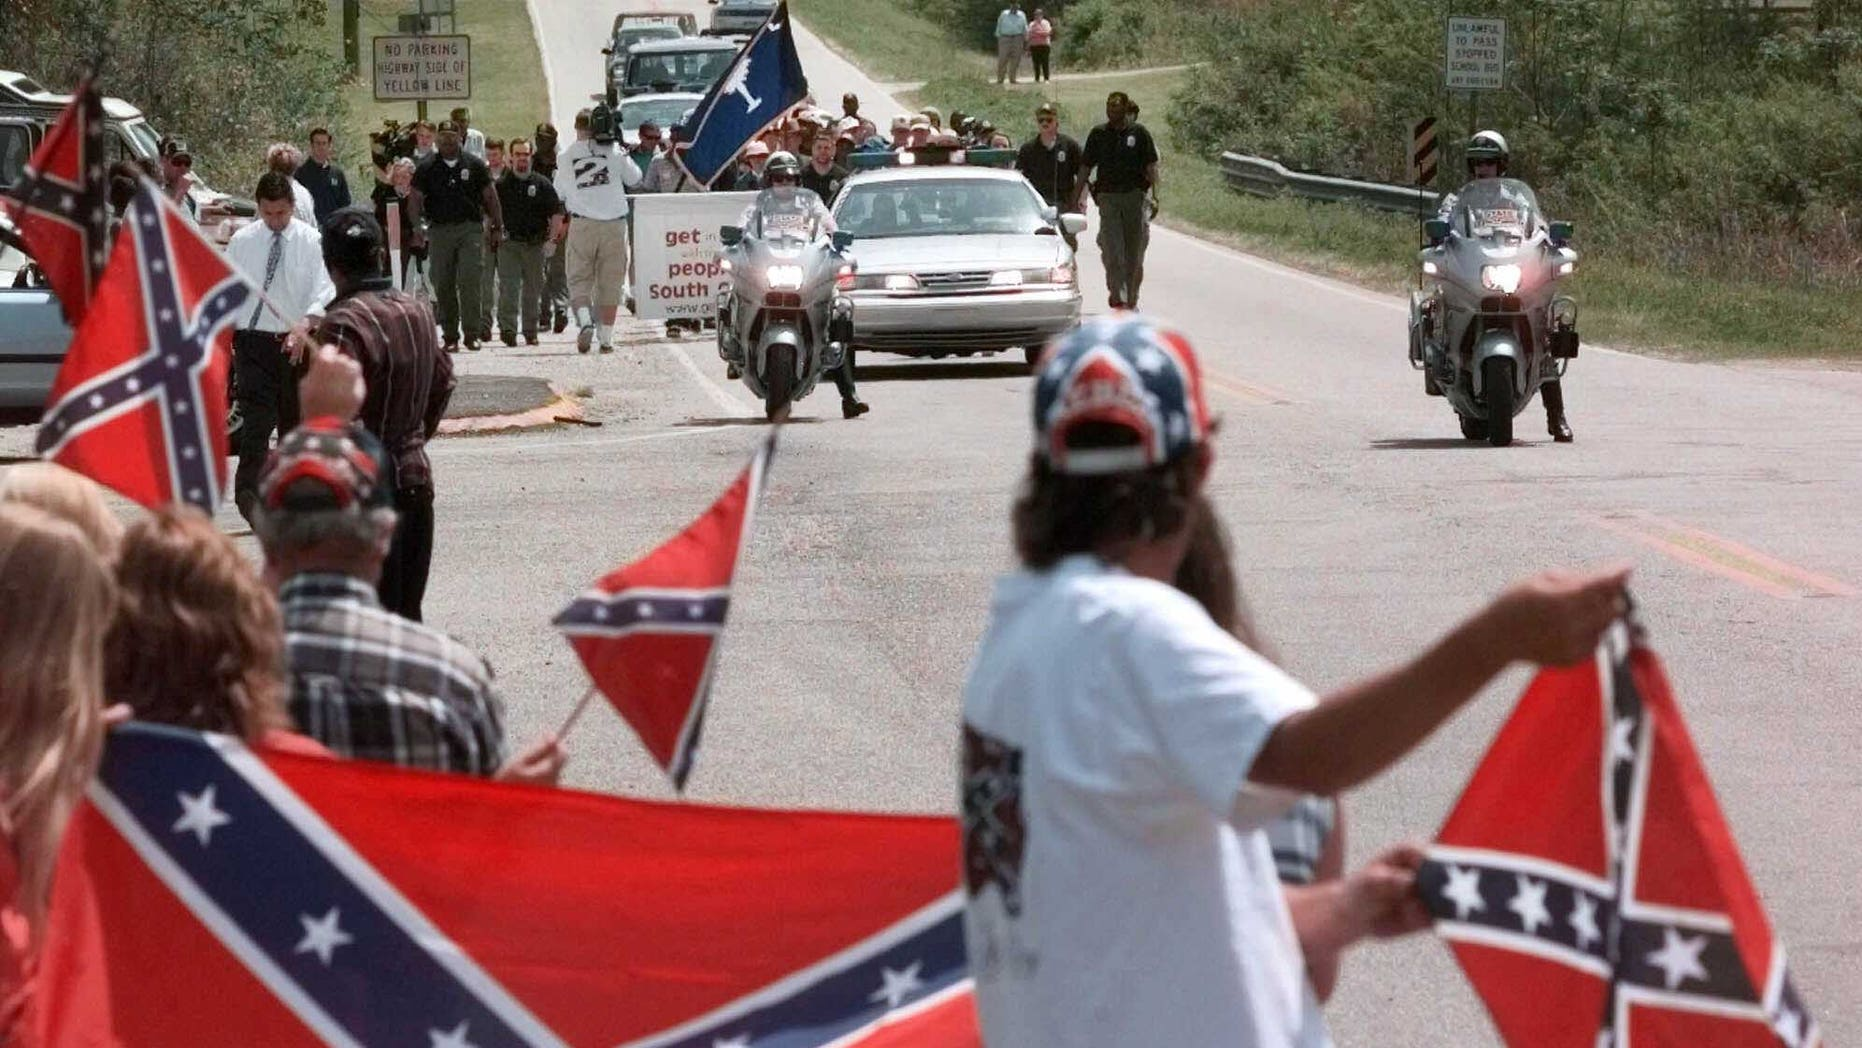 The battle flag of the Confederate army has long been controversial, but now it is being banned online and in stores. (AP Photo/Mary Ann Chastain, File)